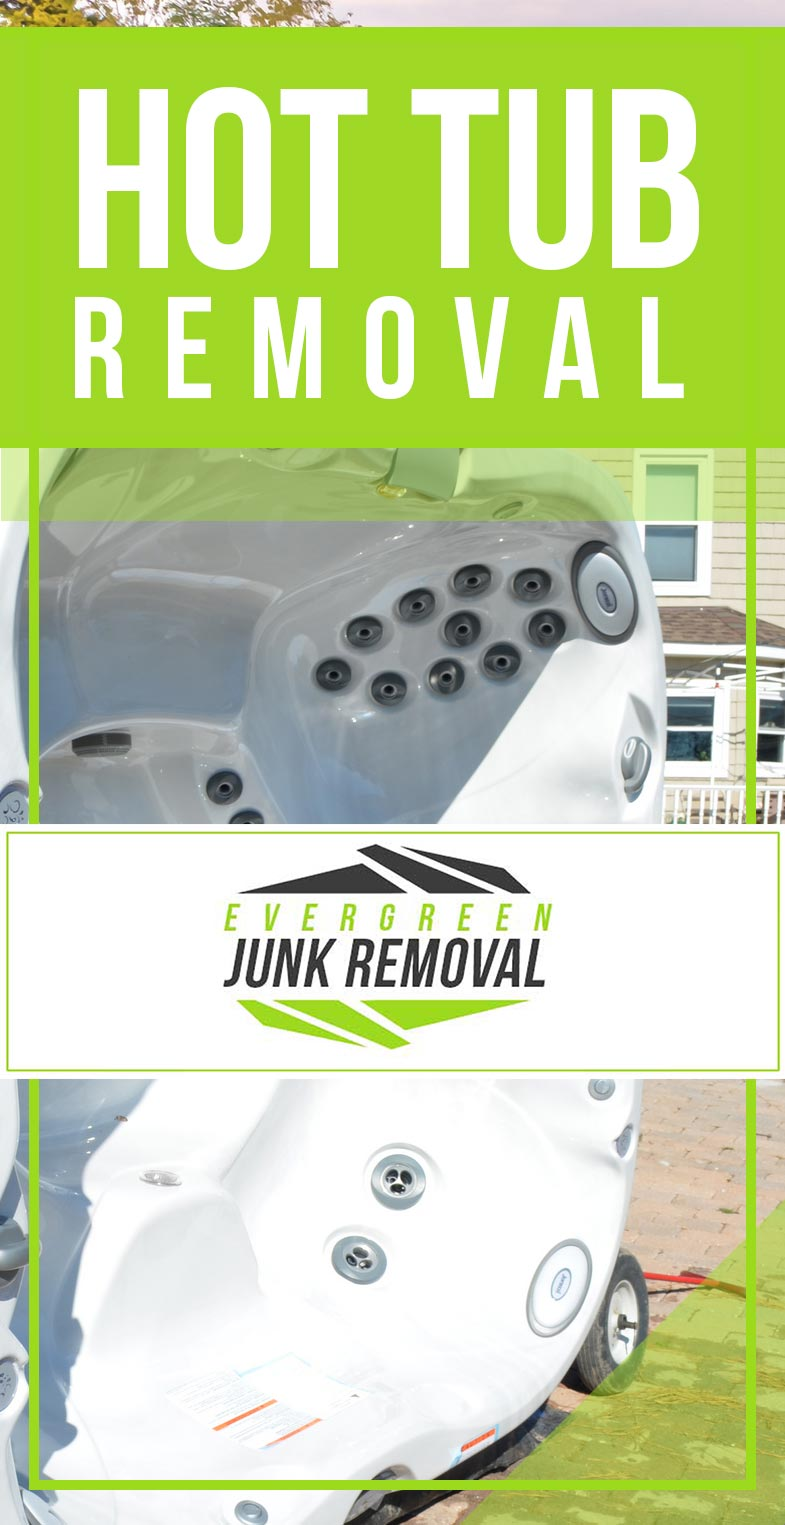 Junk Removal Country Club Hot Tub Removal